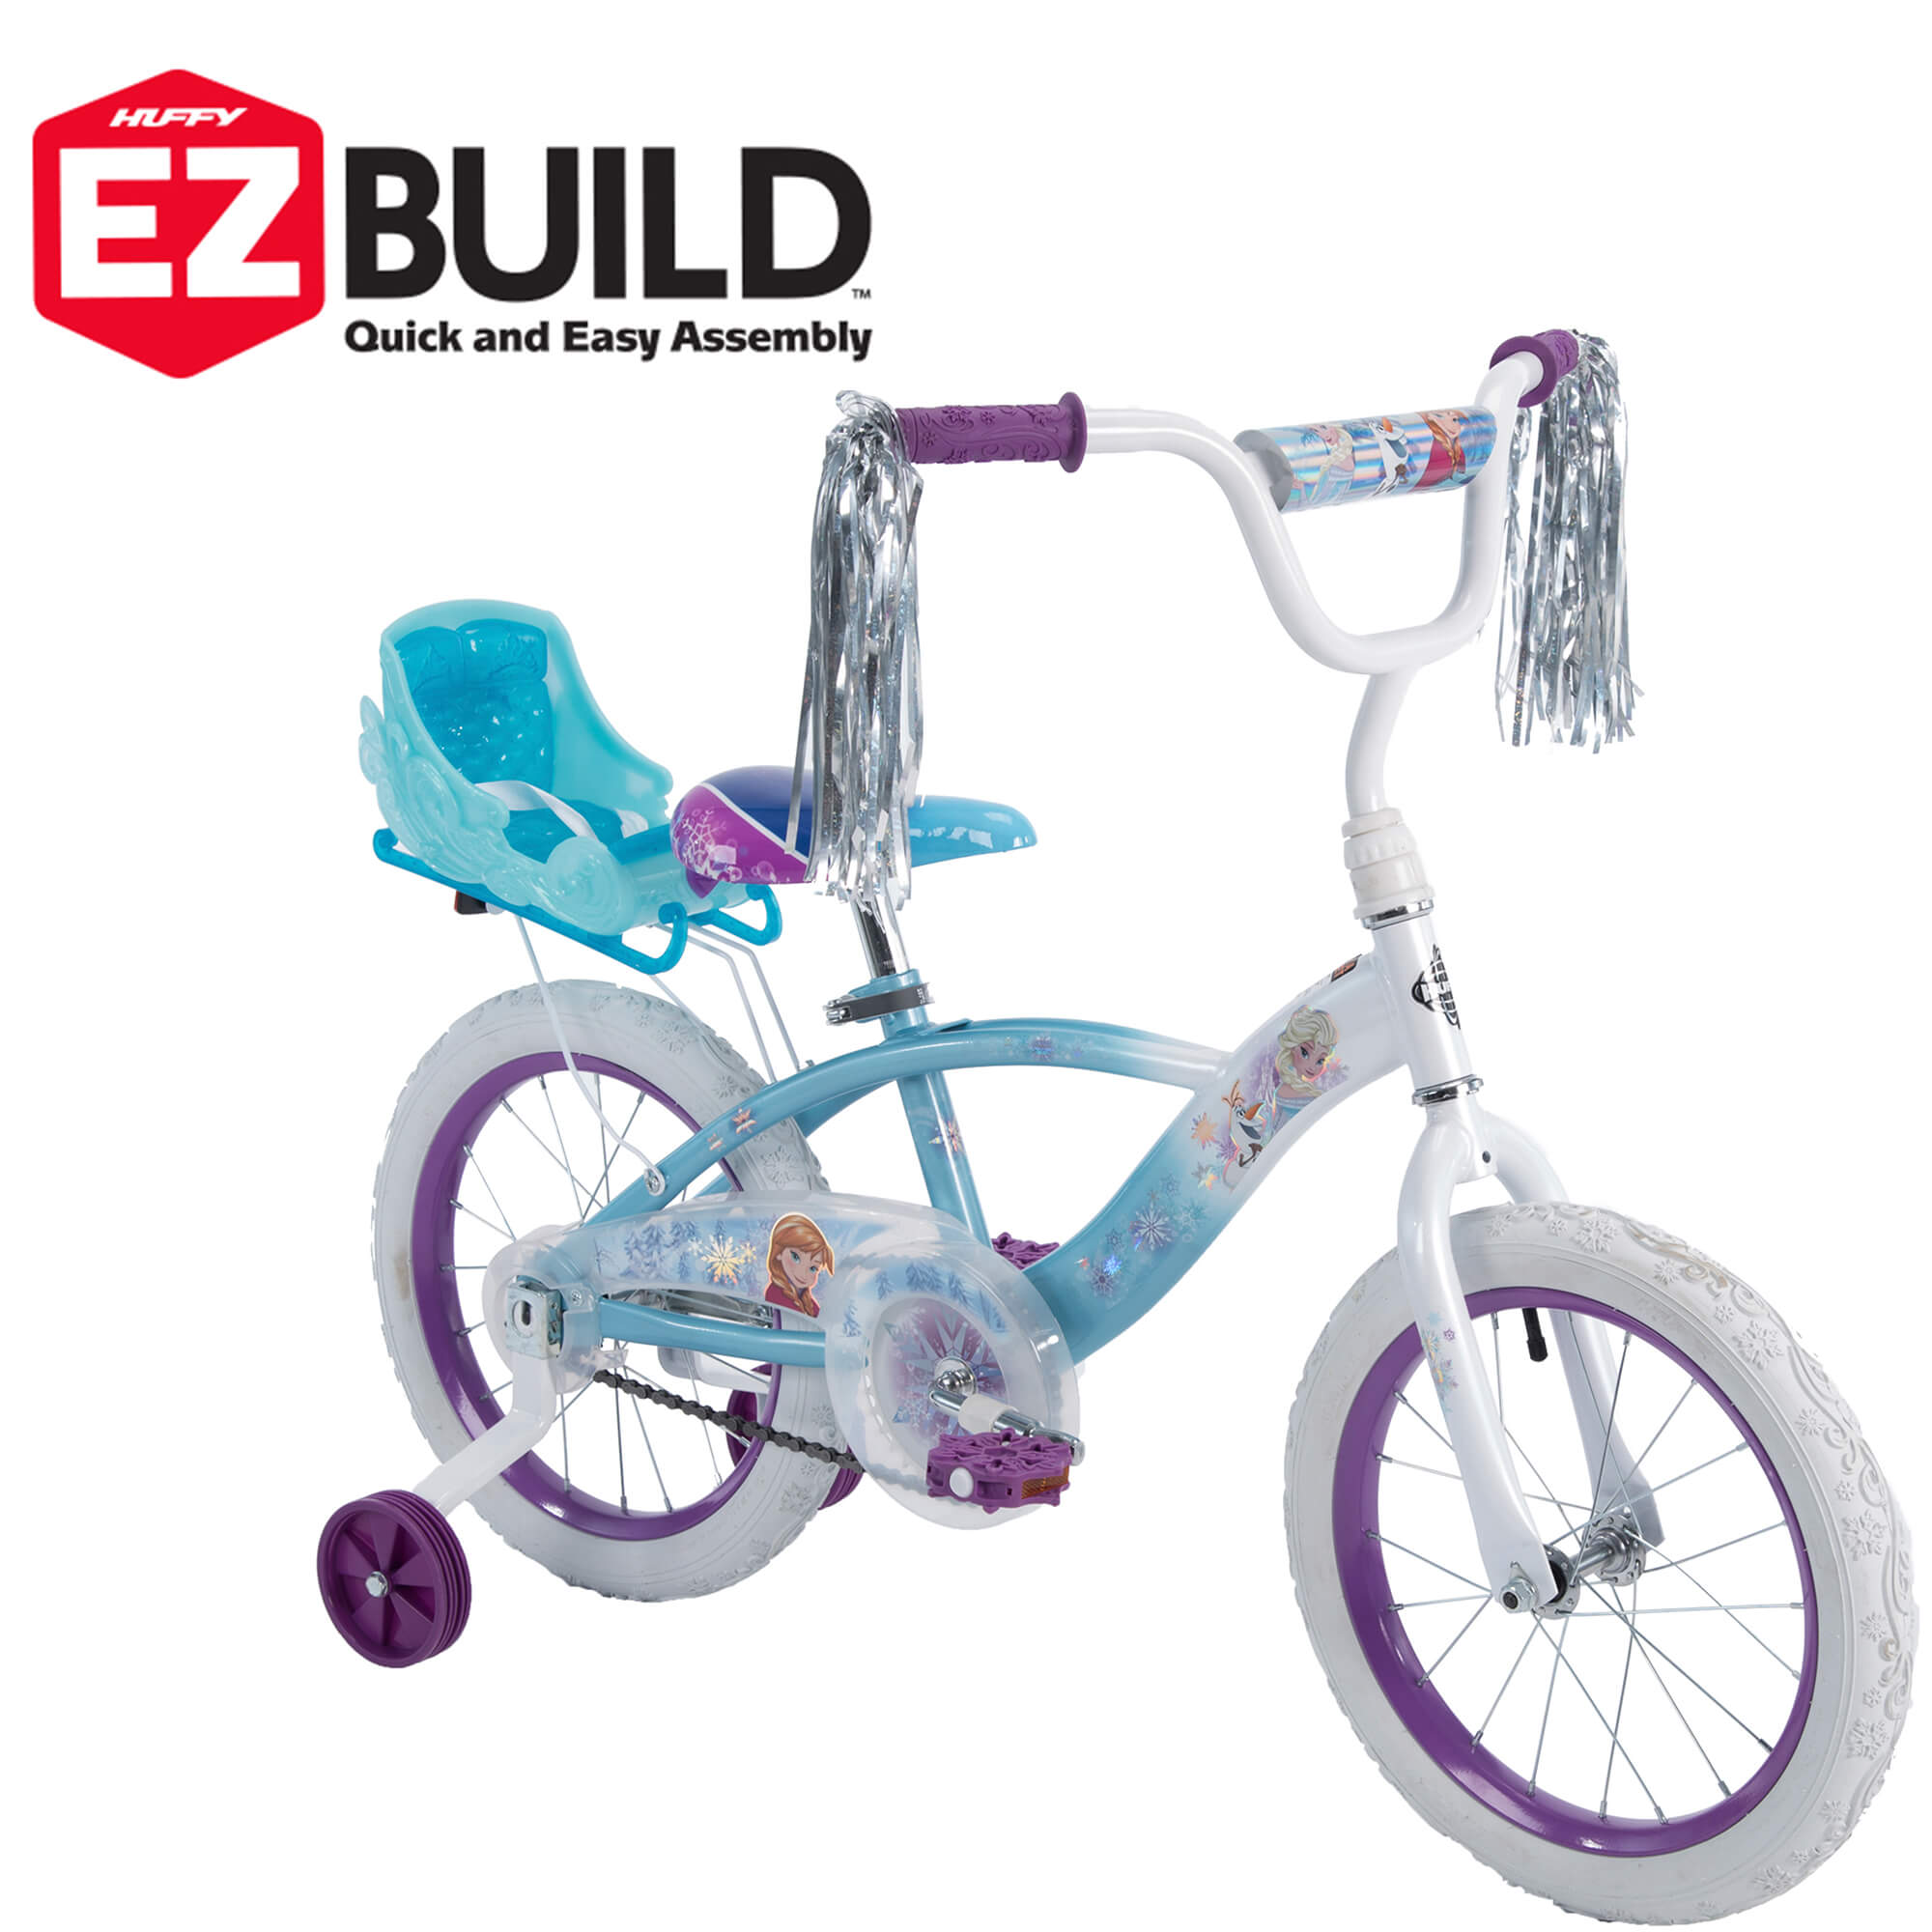 "Huffy Disney Frozen 16"" EZ Build Girls Bike with Sleigh Doll Carrier, White/Blue"